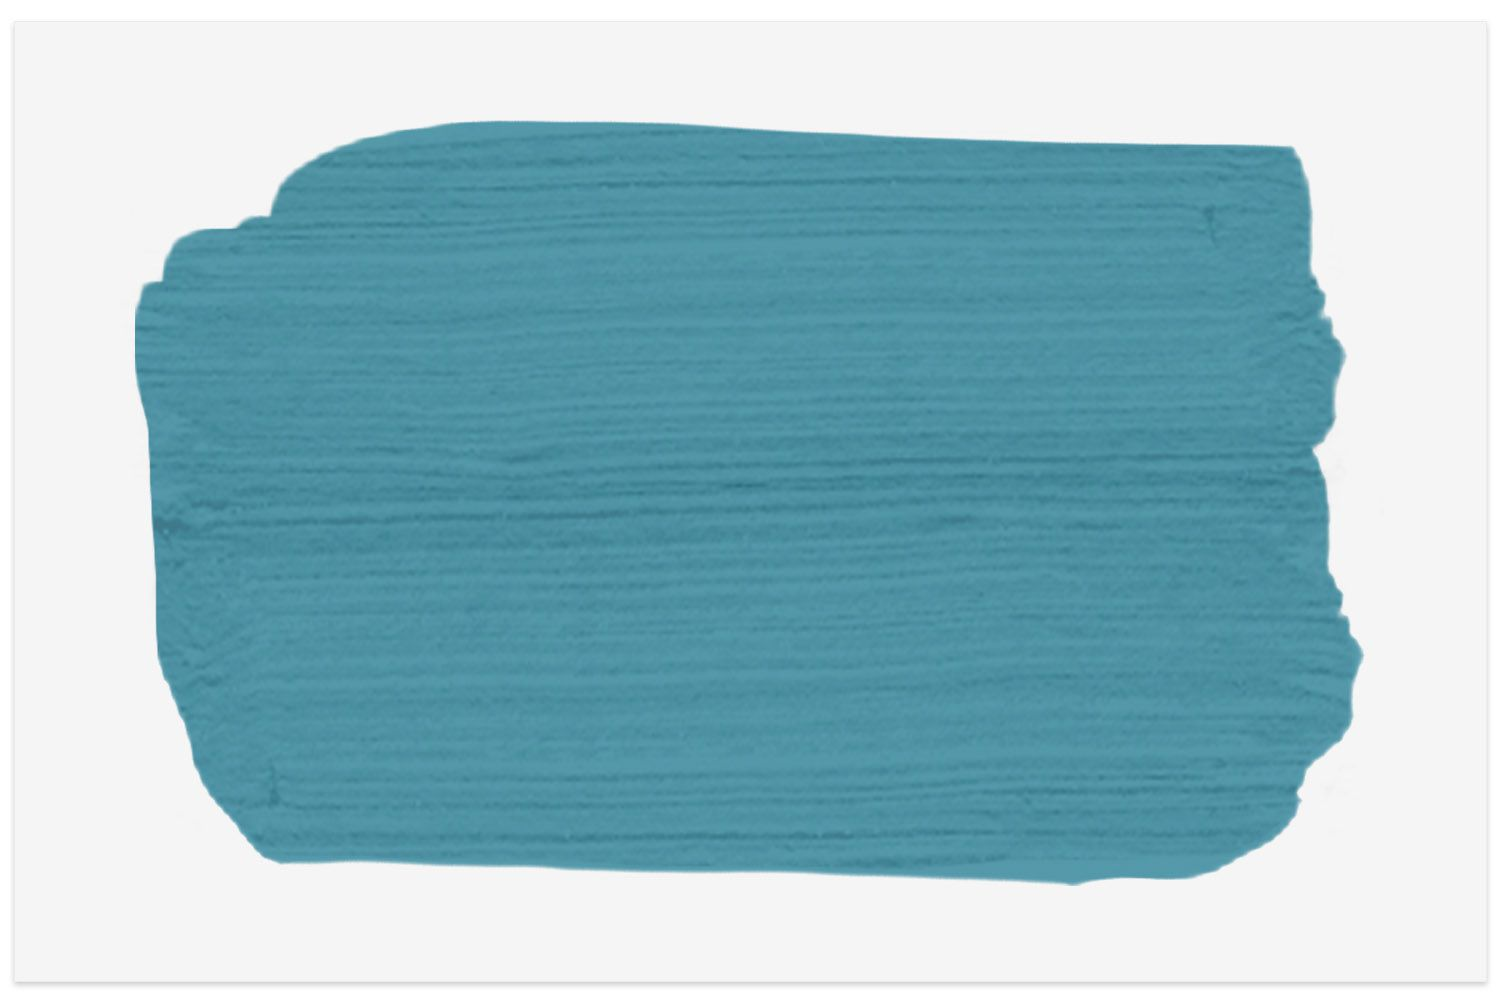 Blue Toile paint swatch from Benjamin Moore